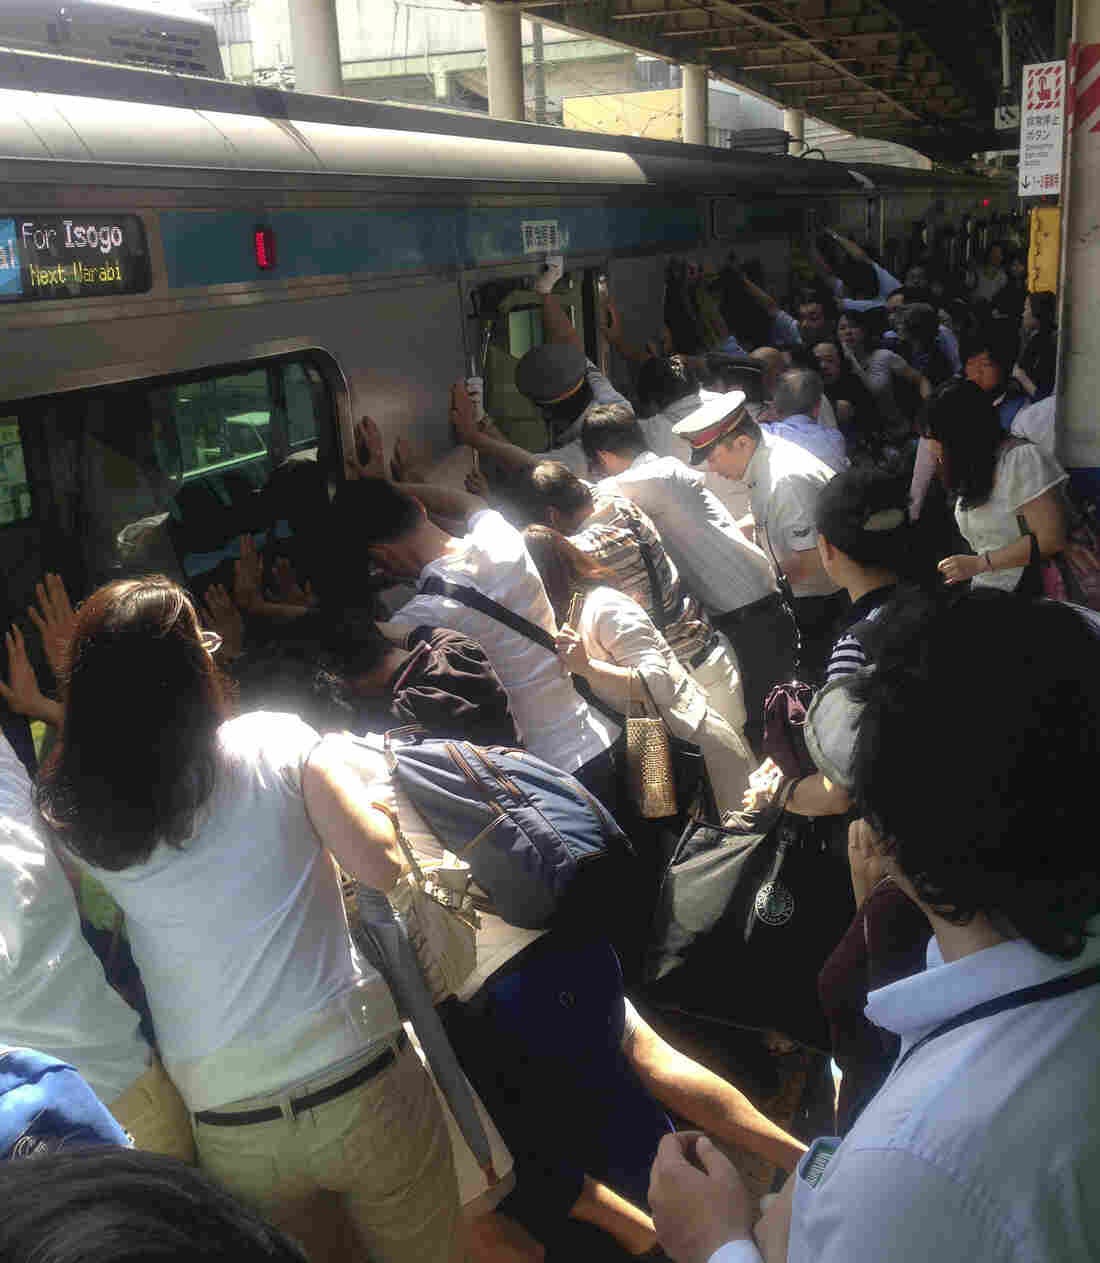 Train passengers and railway staff tilted a train car to one side as they rescued a woman Monday at a station near Tokyo. She had fallen between a the car and the platform. The woman was not seriously injured.